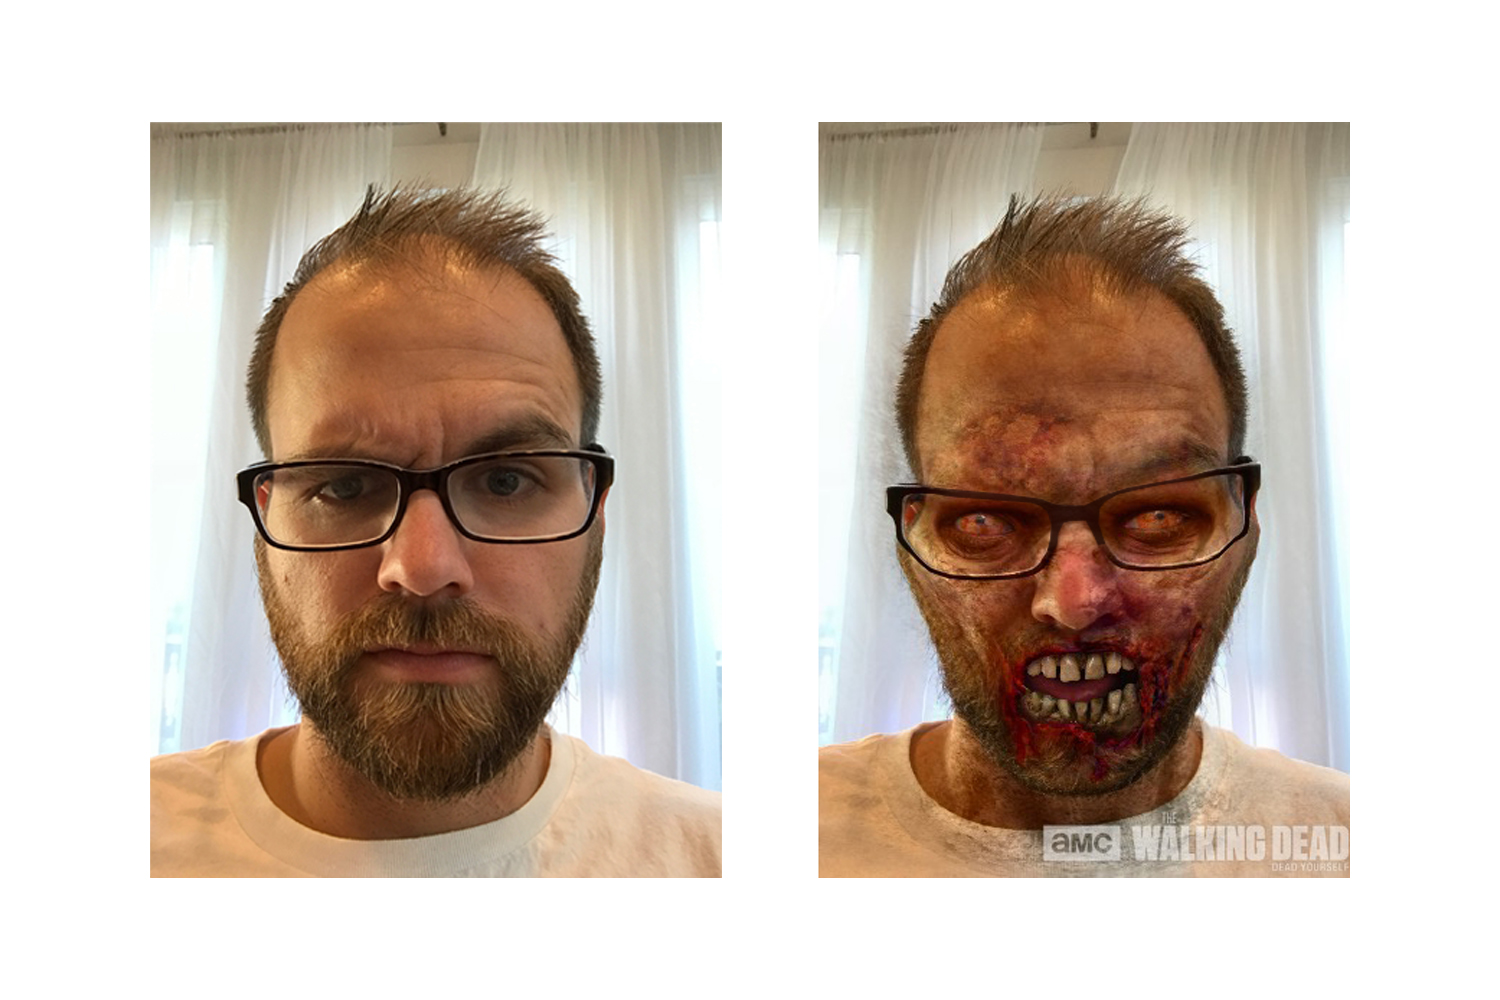 A face only a mother could love.  You know........seeing what you would look like as a zombie makes you feel a lot better about the way you currently look.  Download the Dead Yourself app to see your zombified self.